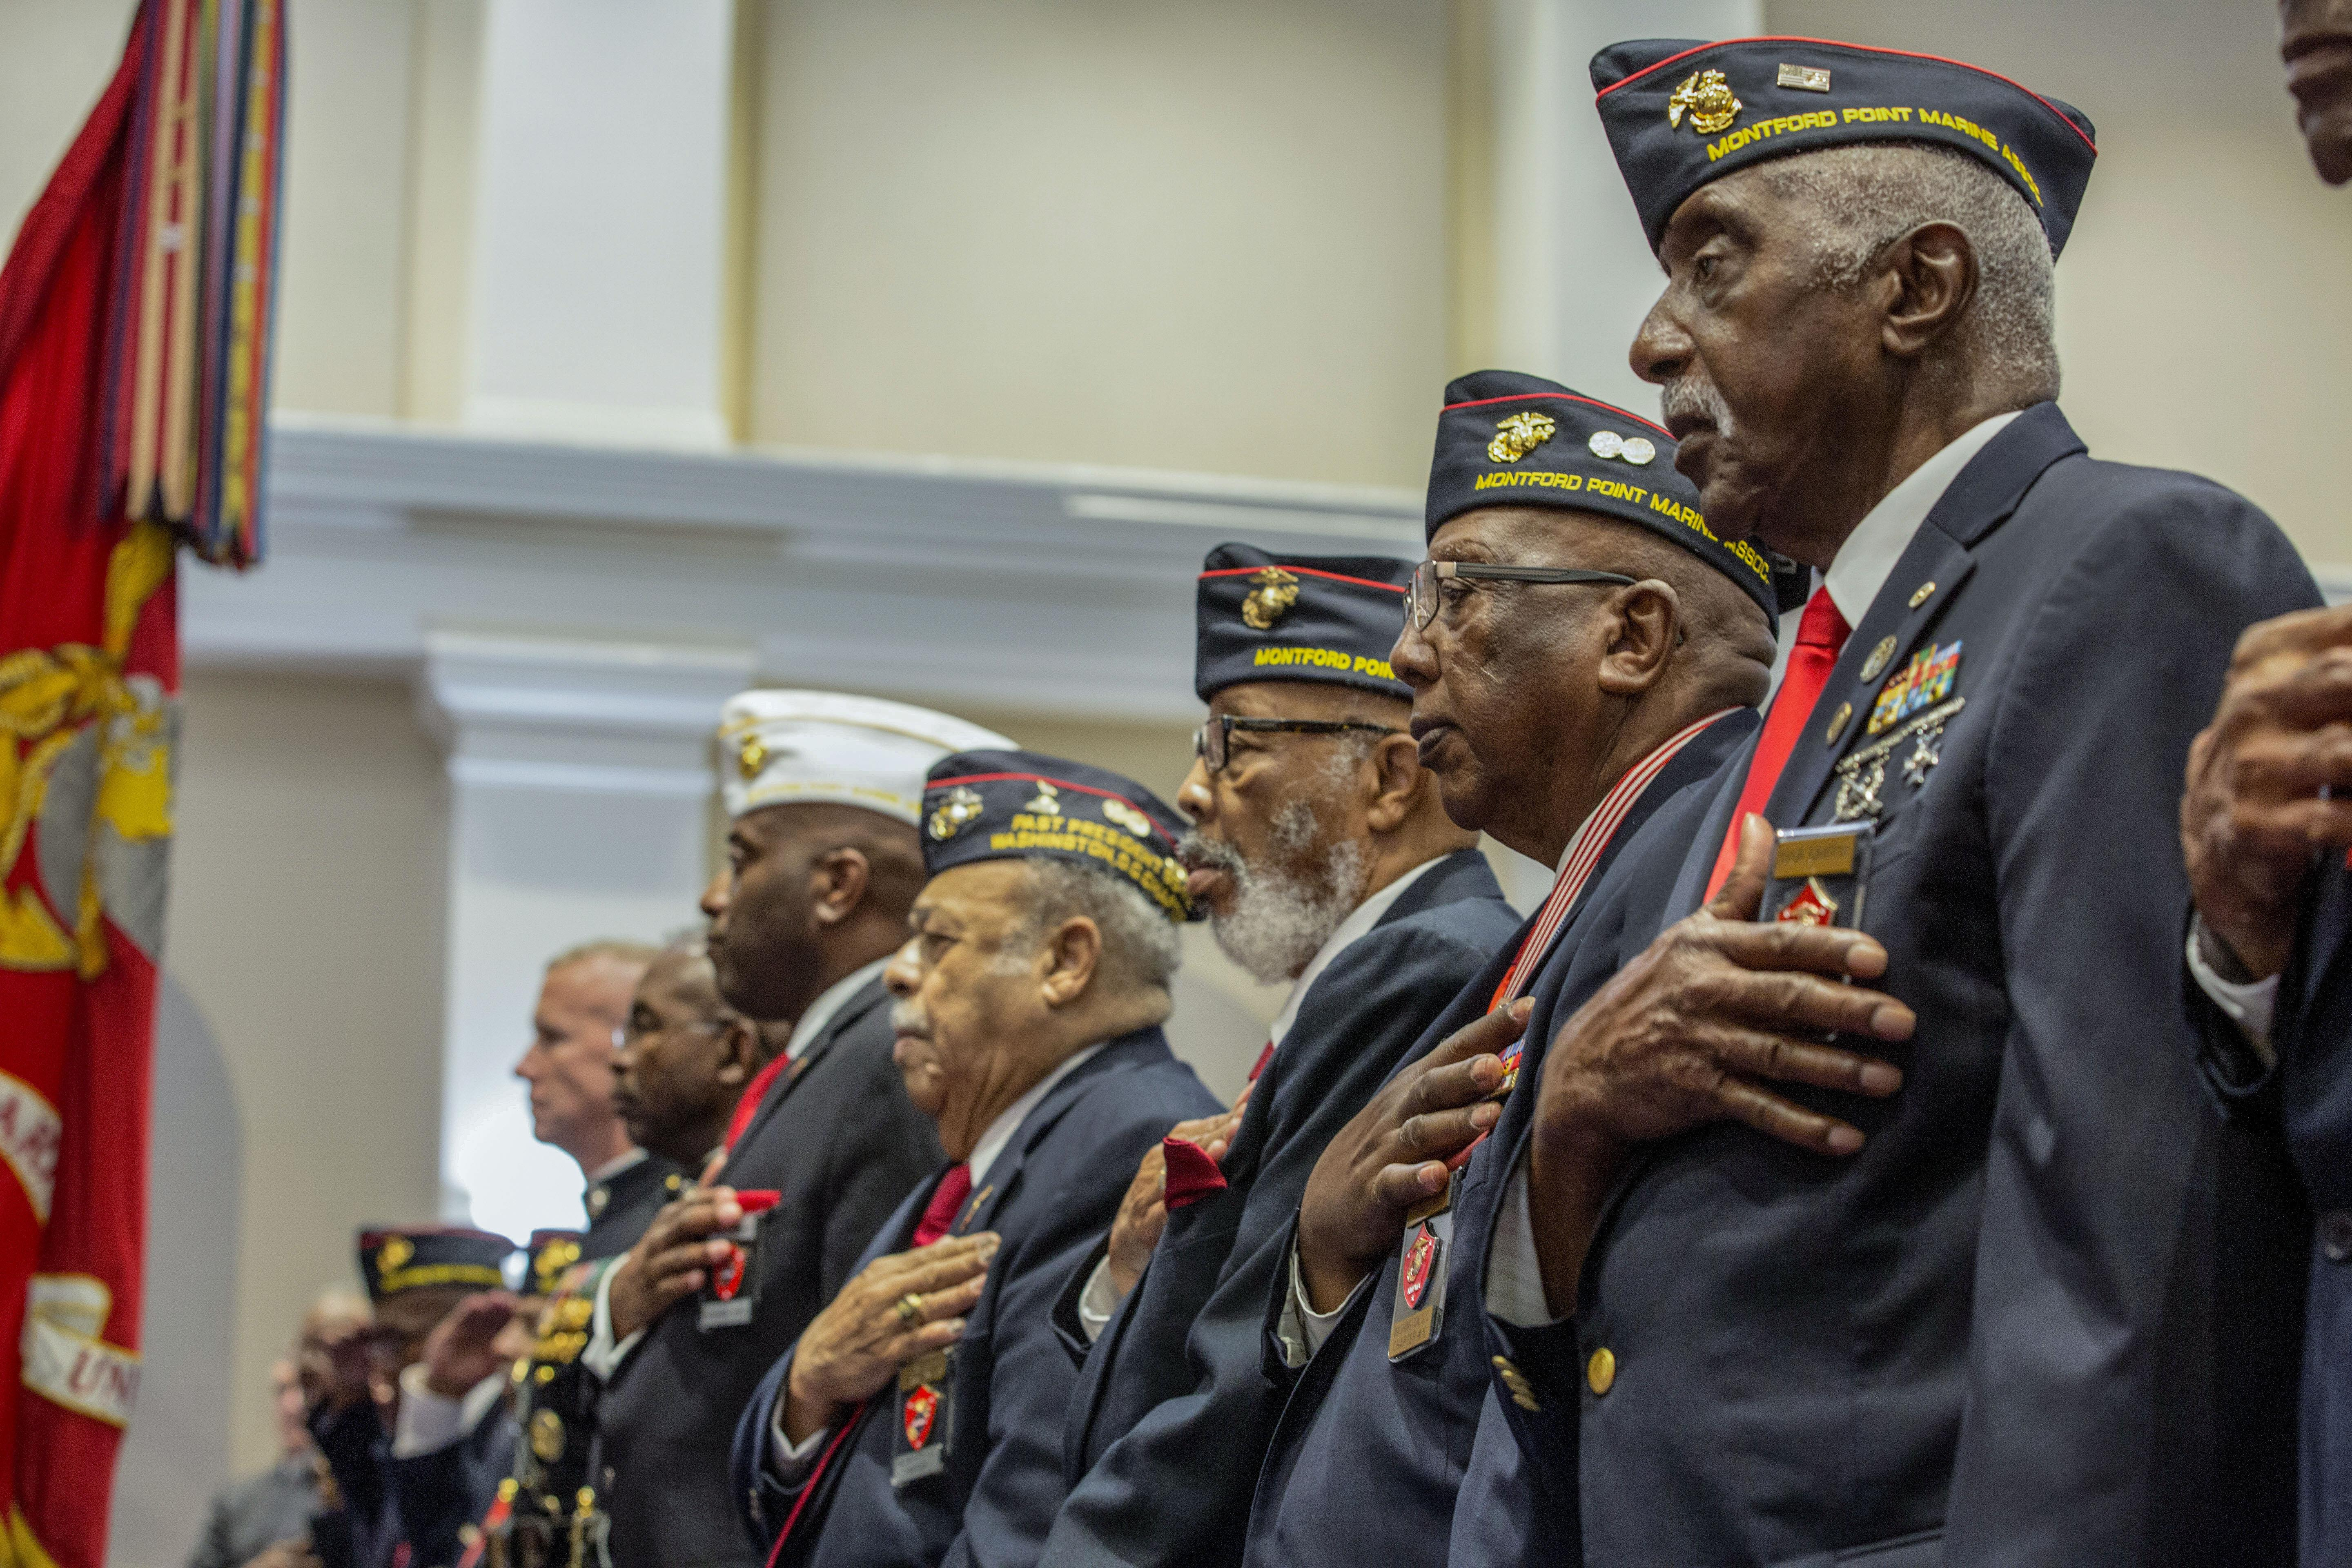 One of the first Black Marines finally gets his Congressional Gold Medal